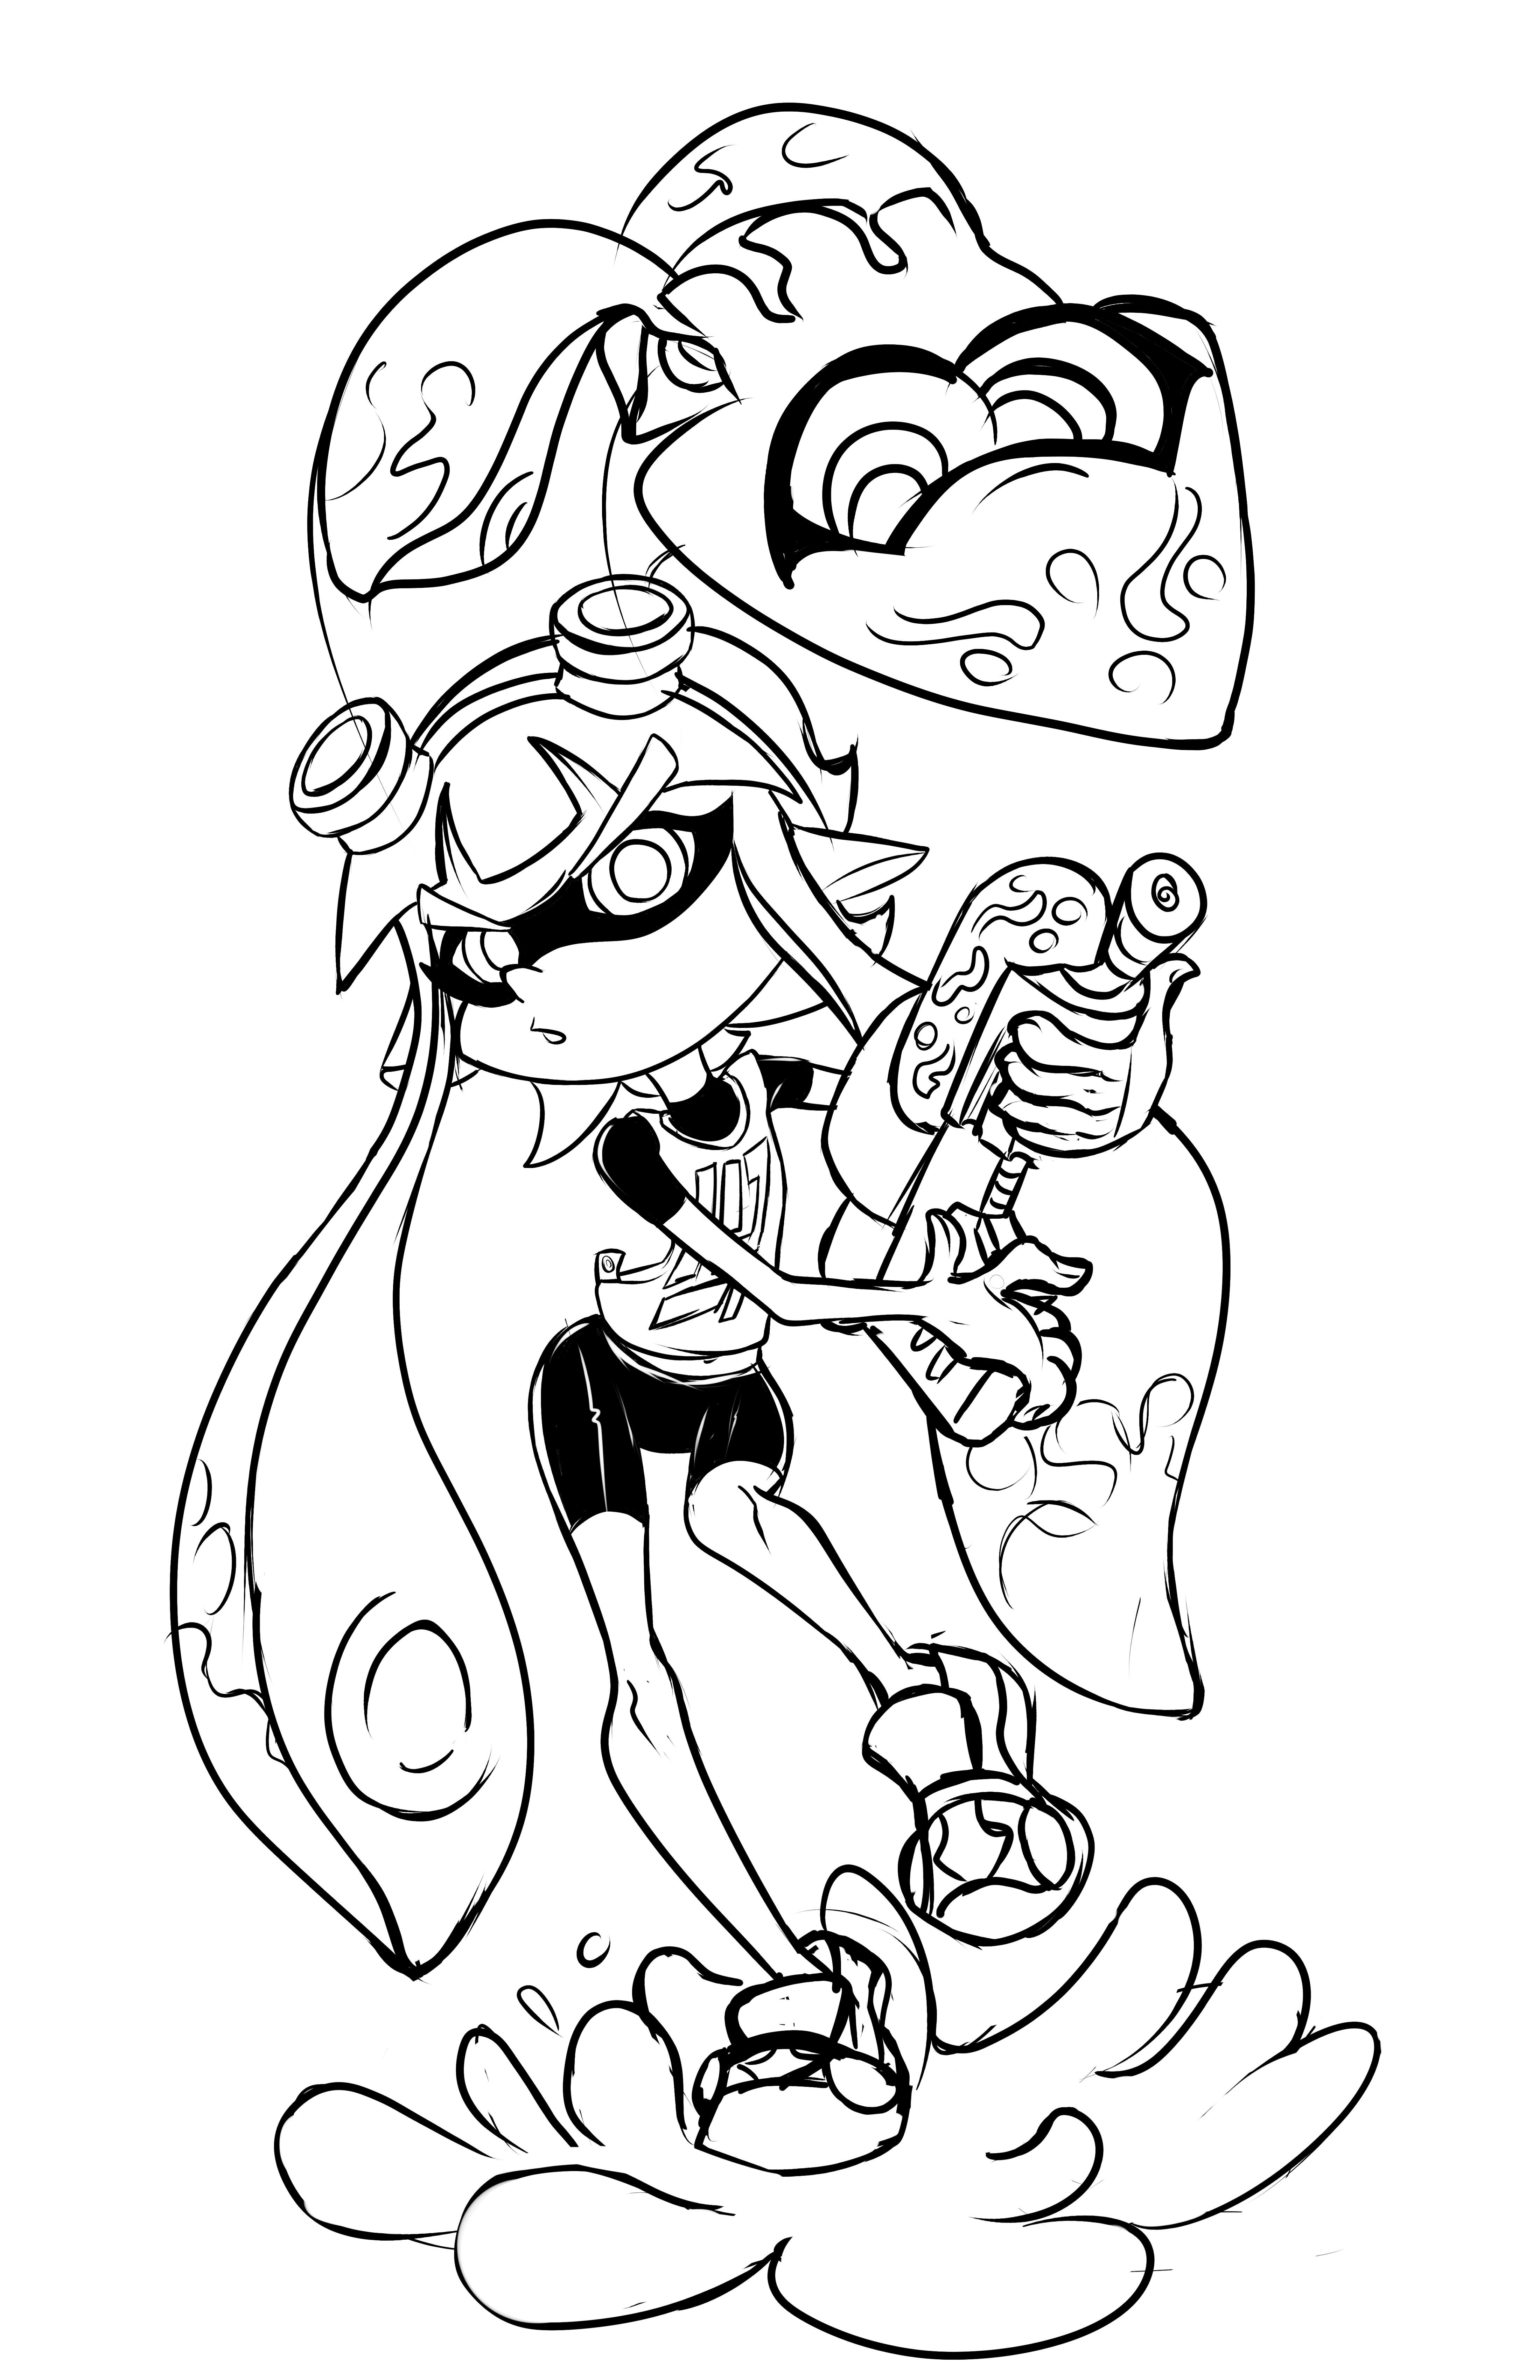 Giant Squid Shooting Ink Coloring Pages